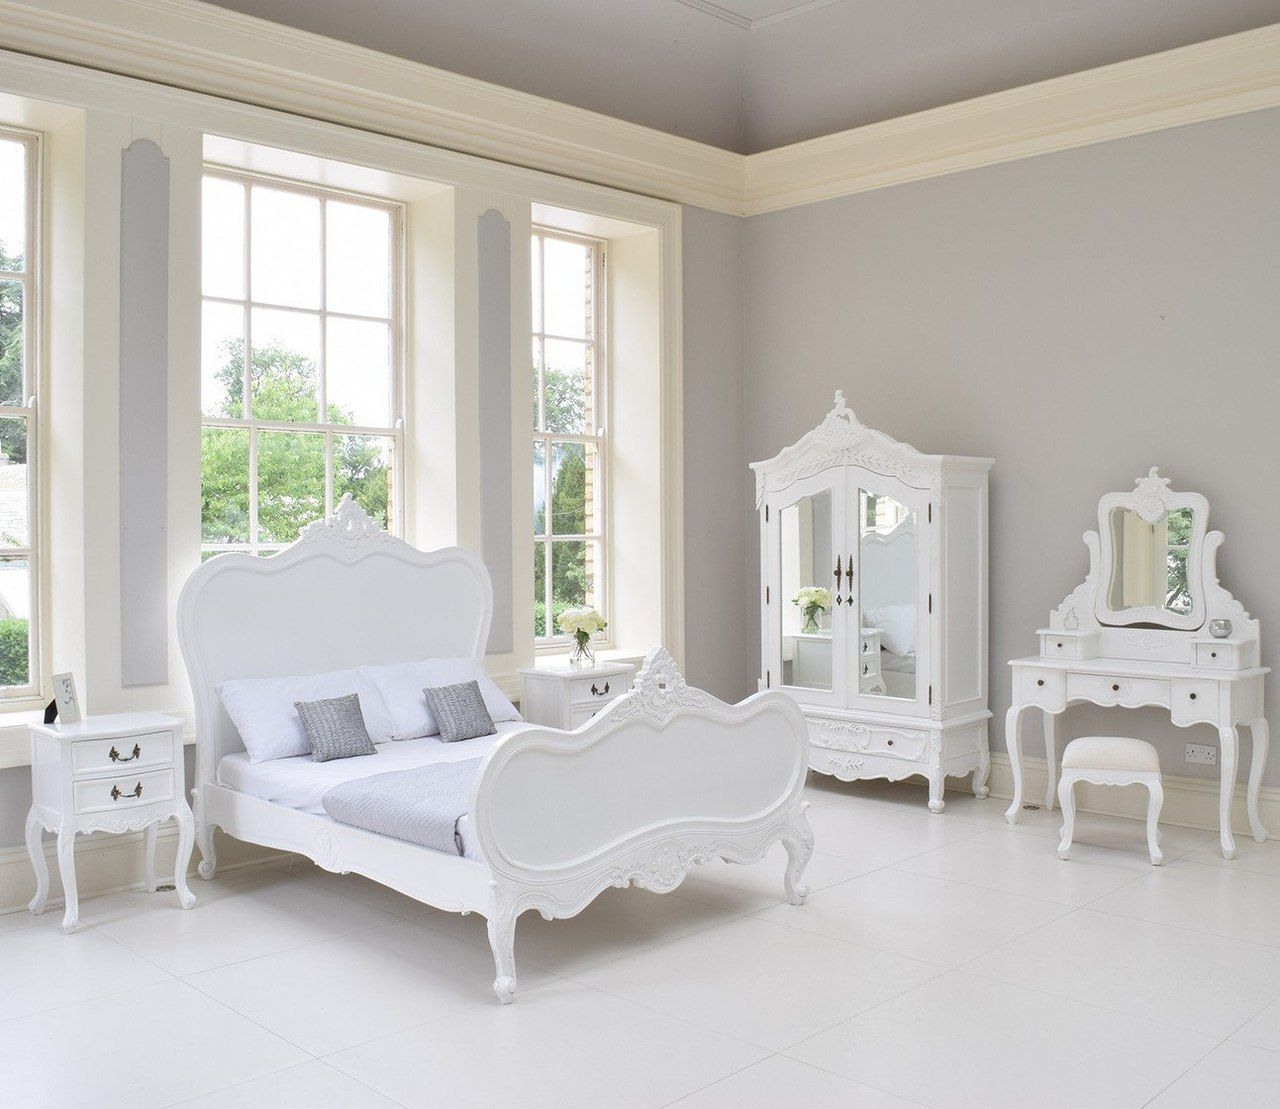 Provincial Luxury Carved Bed Set White  White  Carved Beds Bed Best French Bedroom Set Review